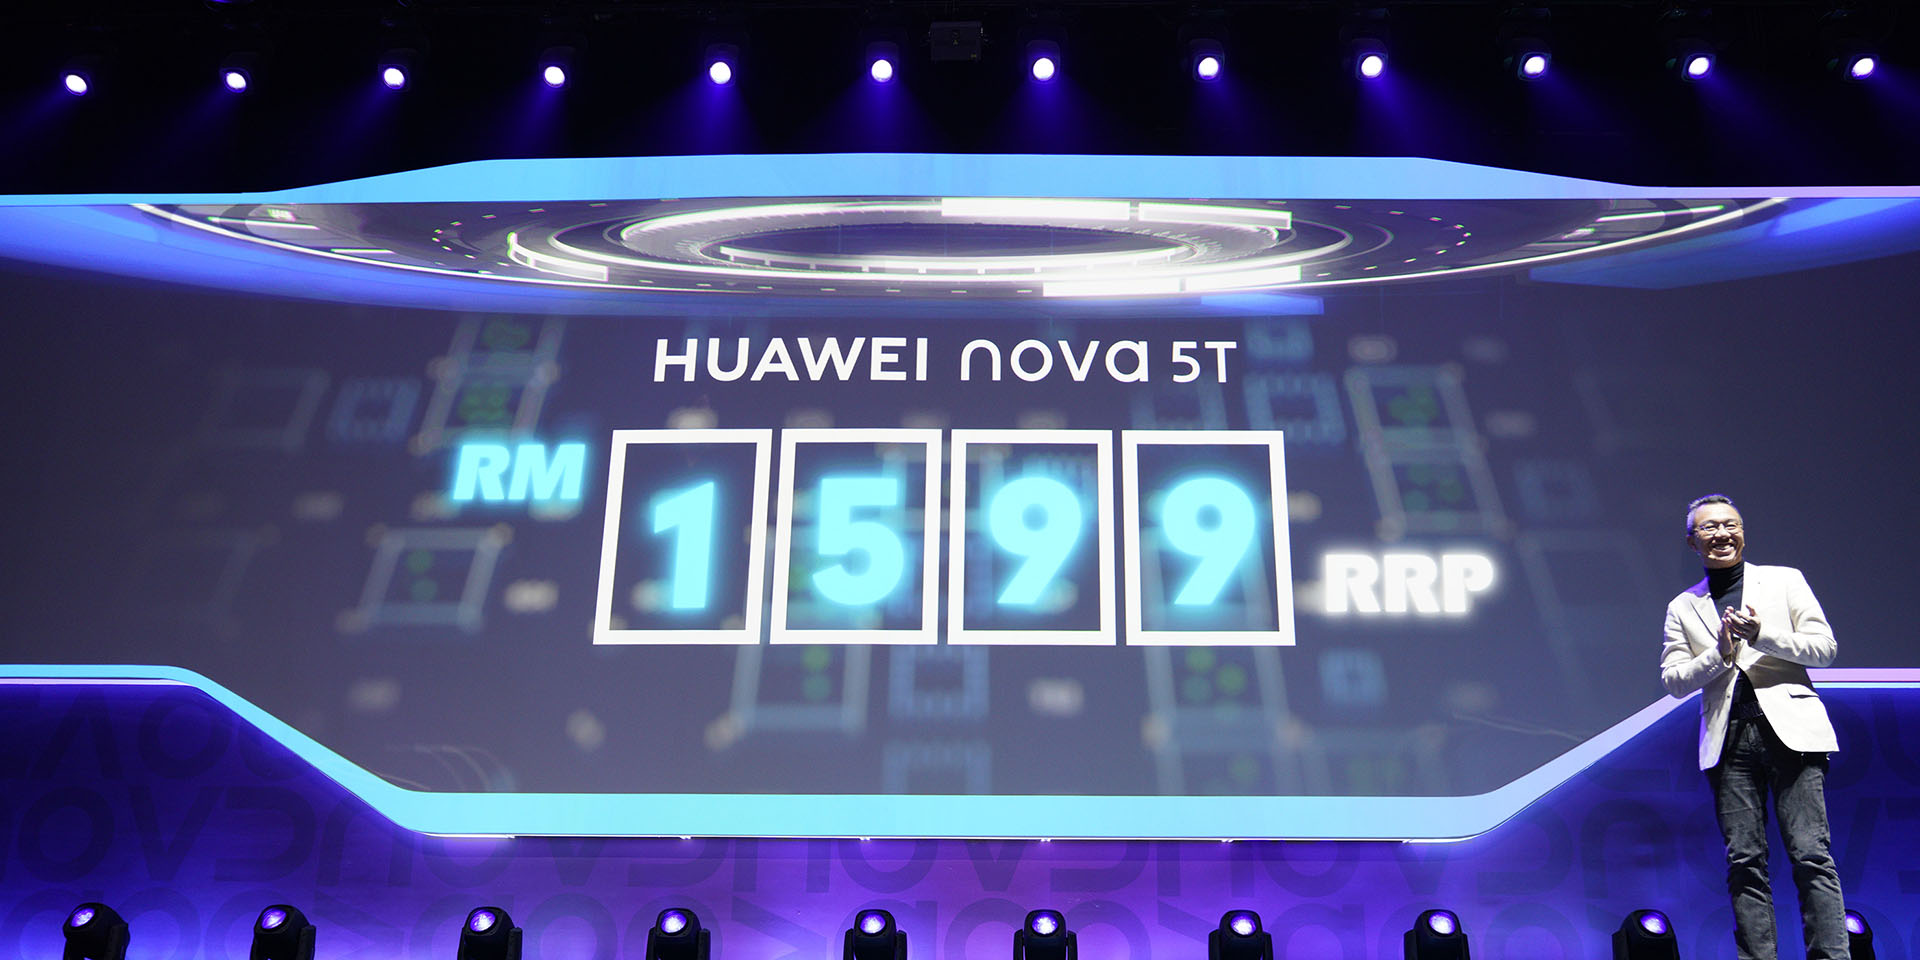 Huawei Nova 5t Arrives At Rm1 599 Equipped With Kirin 980